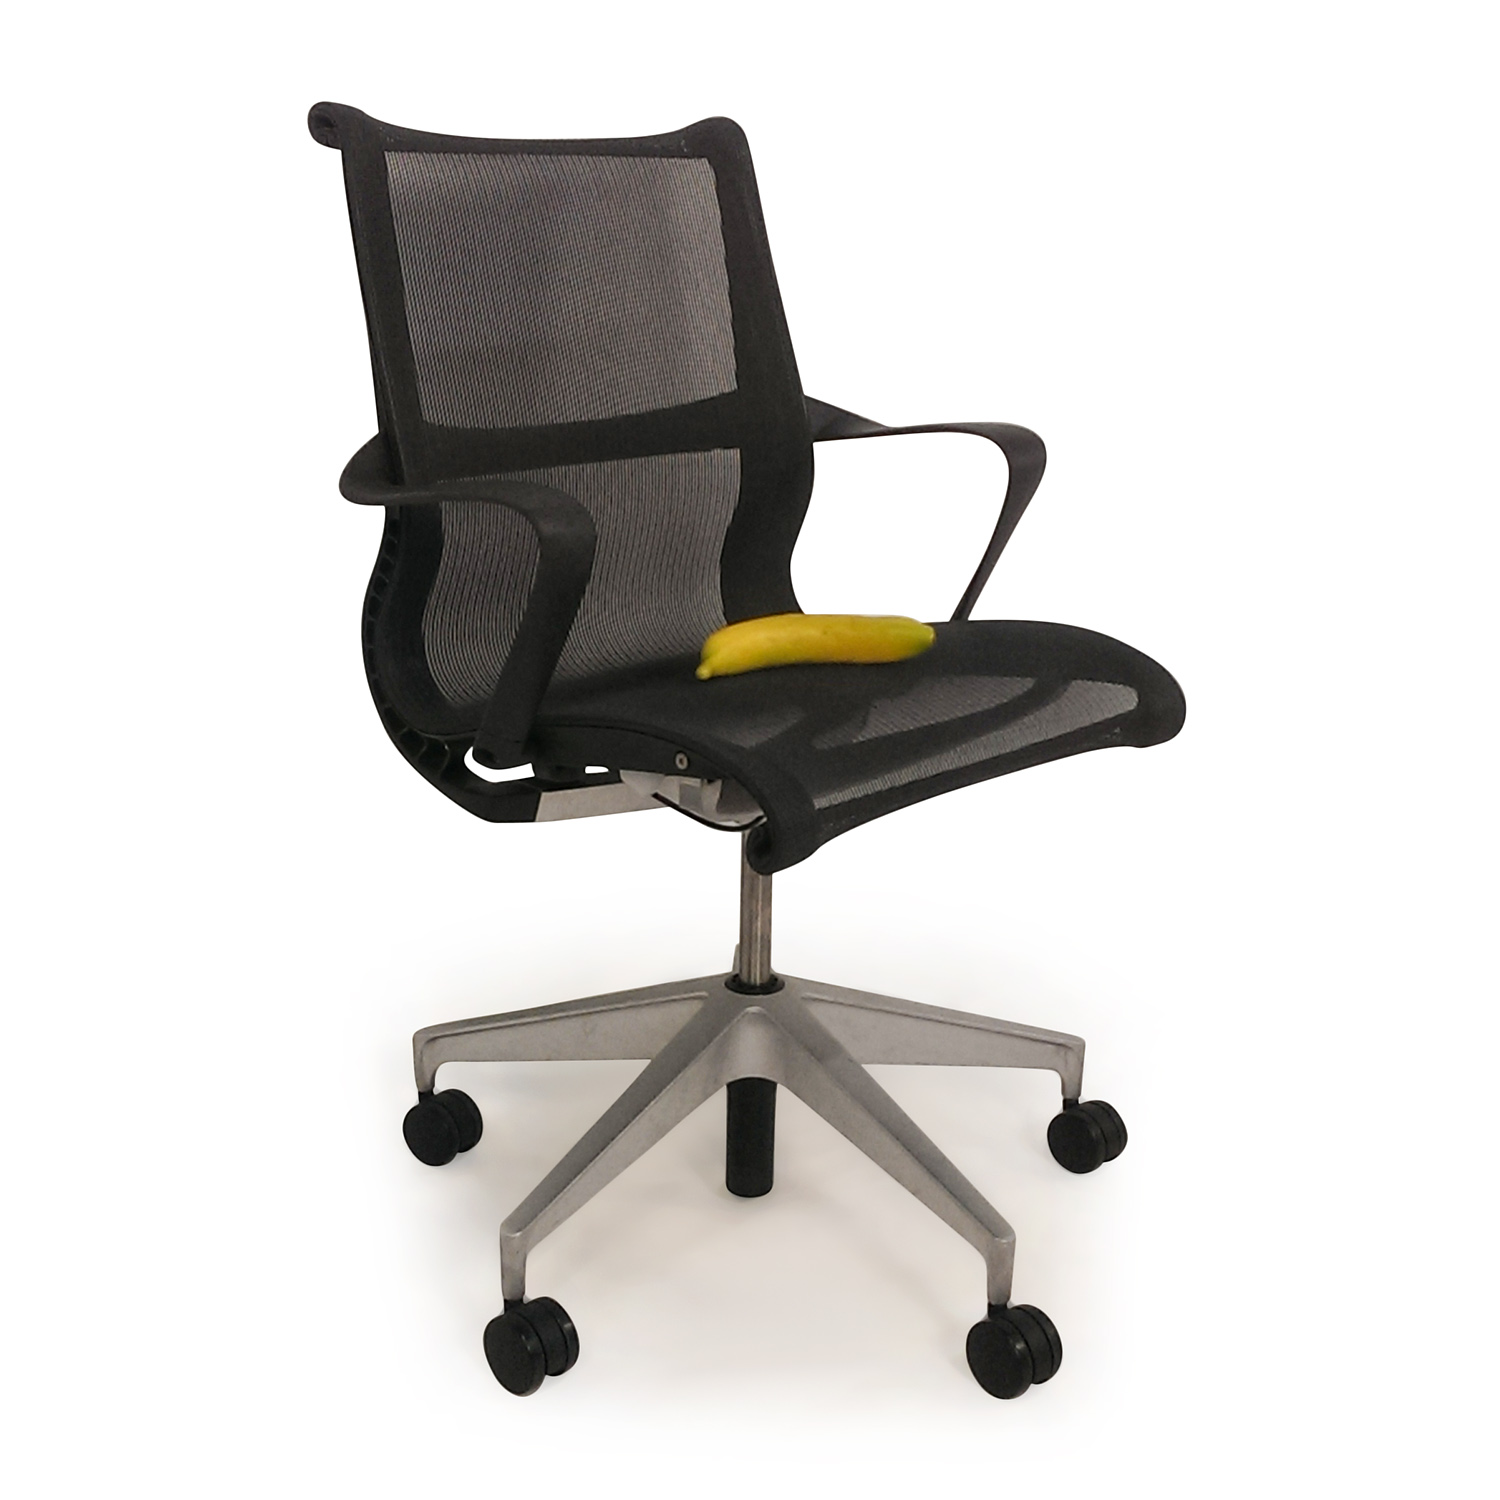 Ergonomic Mesh Office Chair 90% Off - Ergonomic Mesh Computer Chair / Chairs